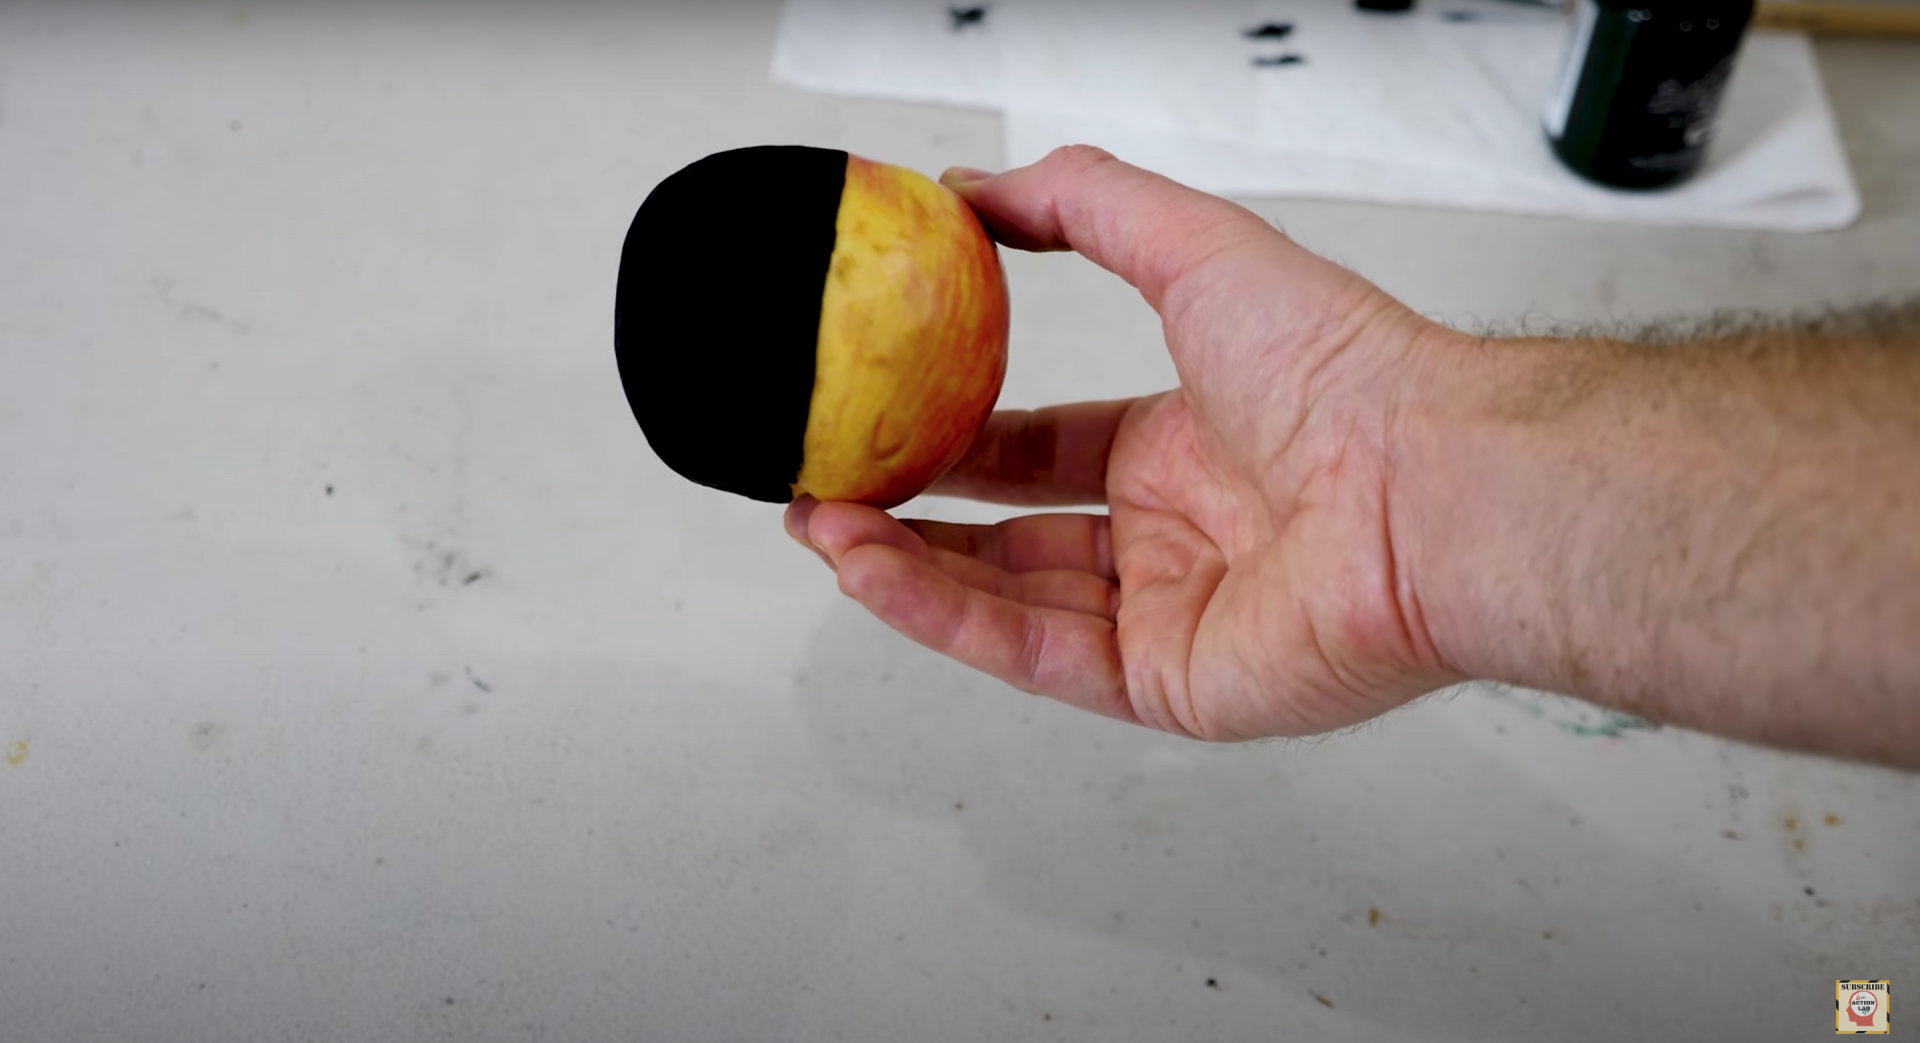 This new ultra-black paint from Japan can absorb 99.4% of visible light.